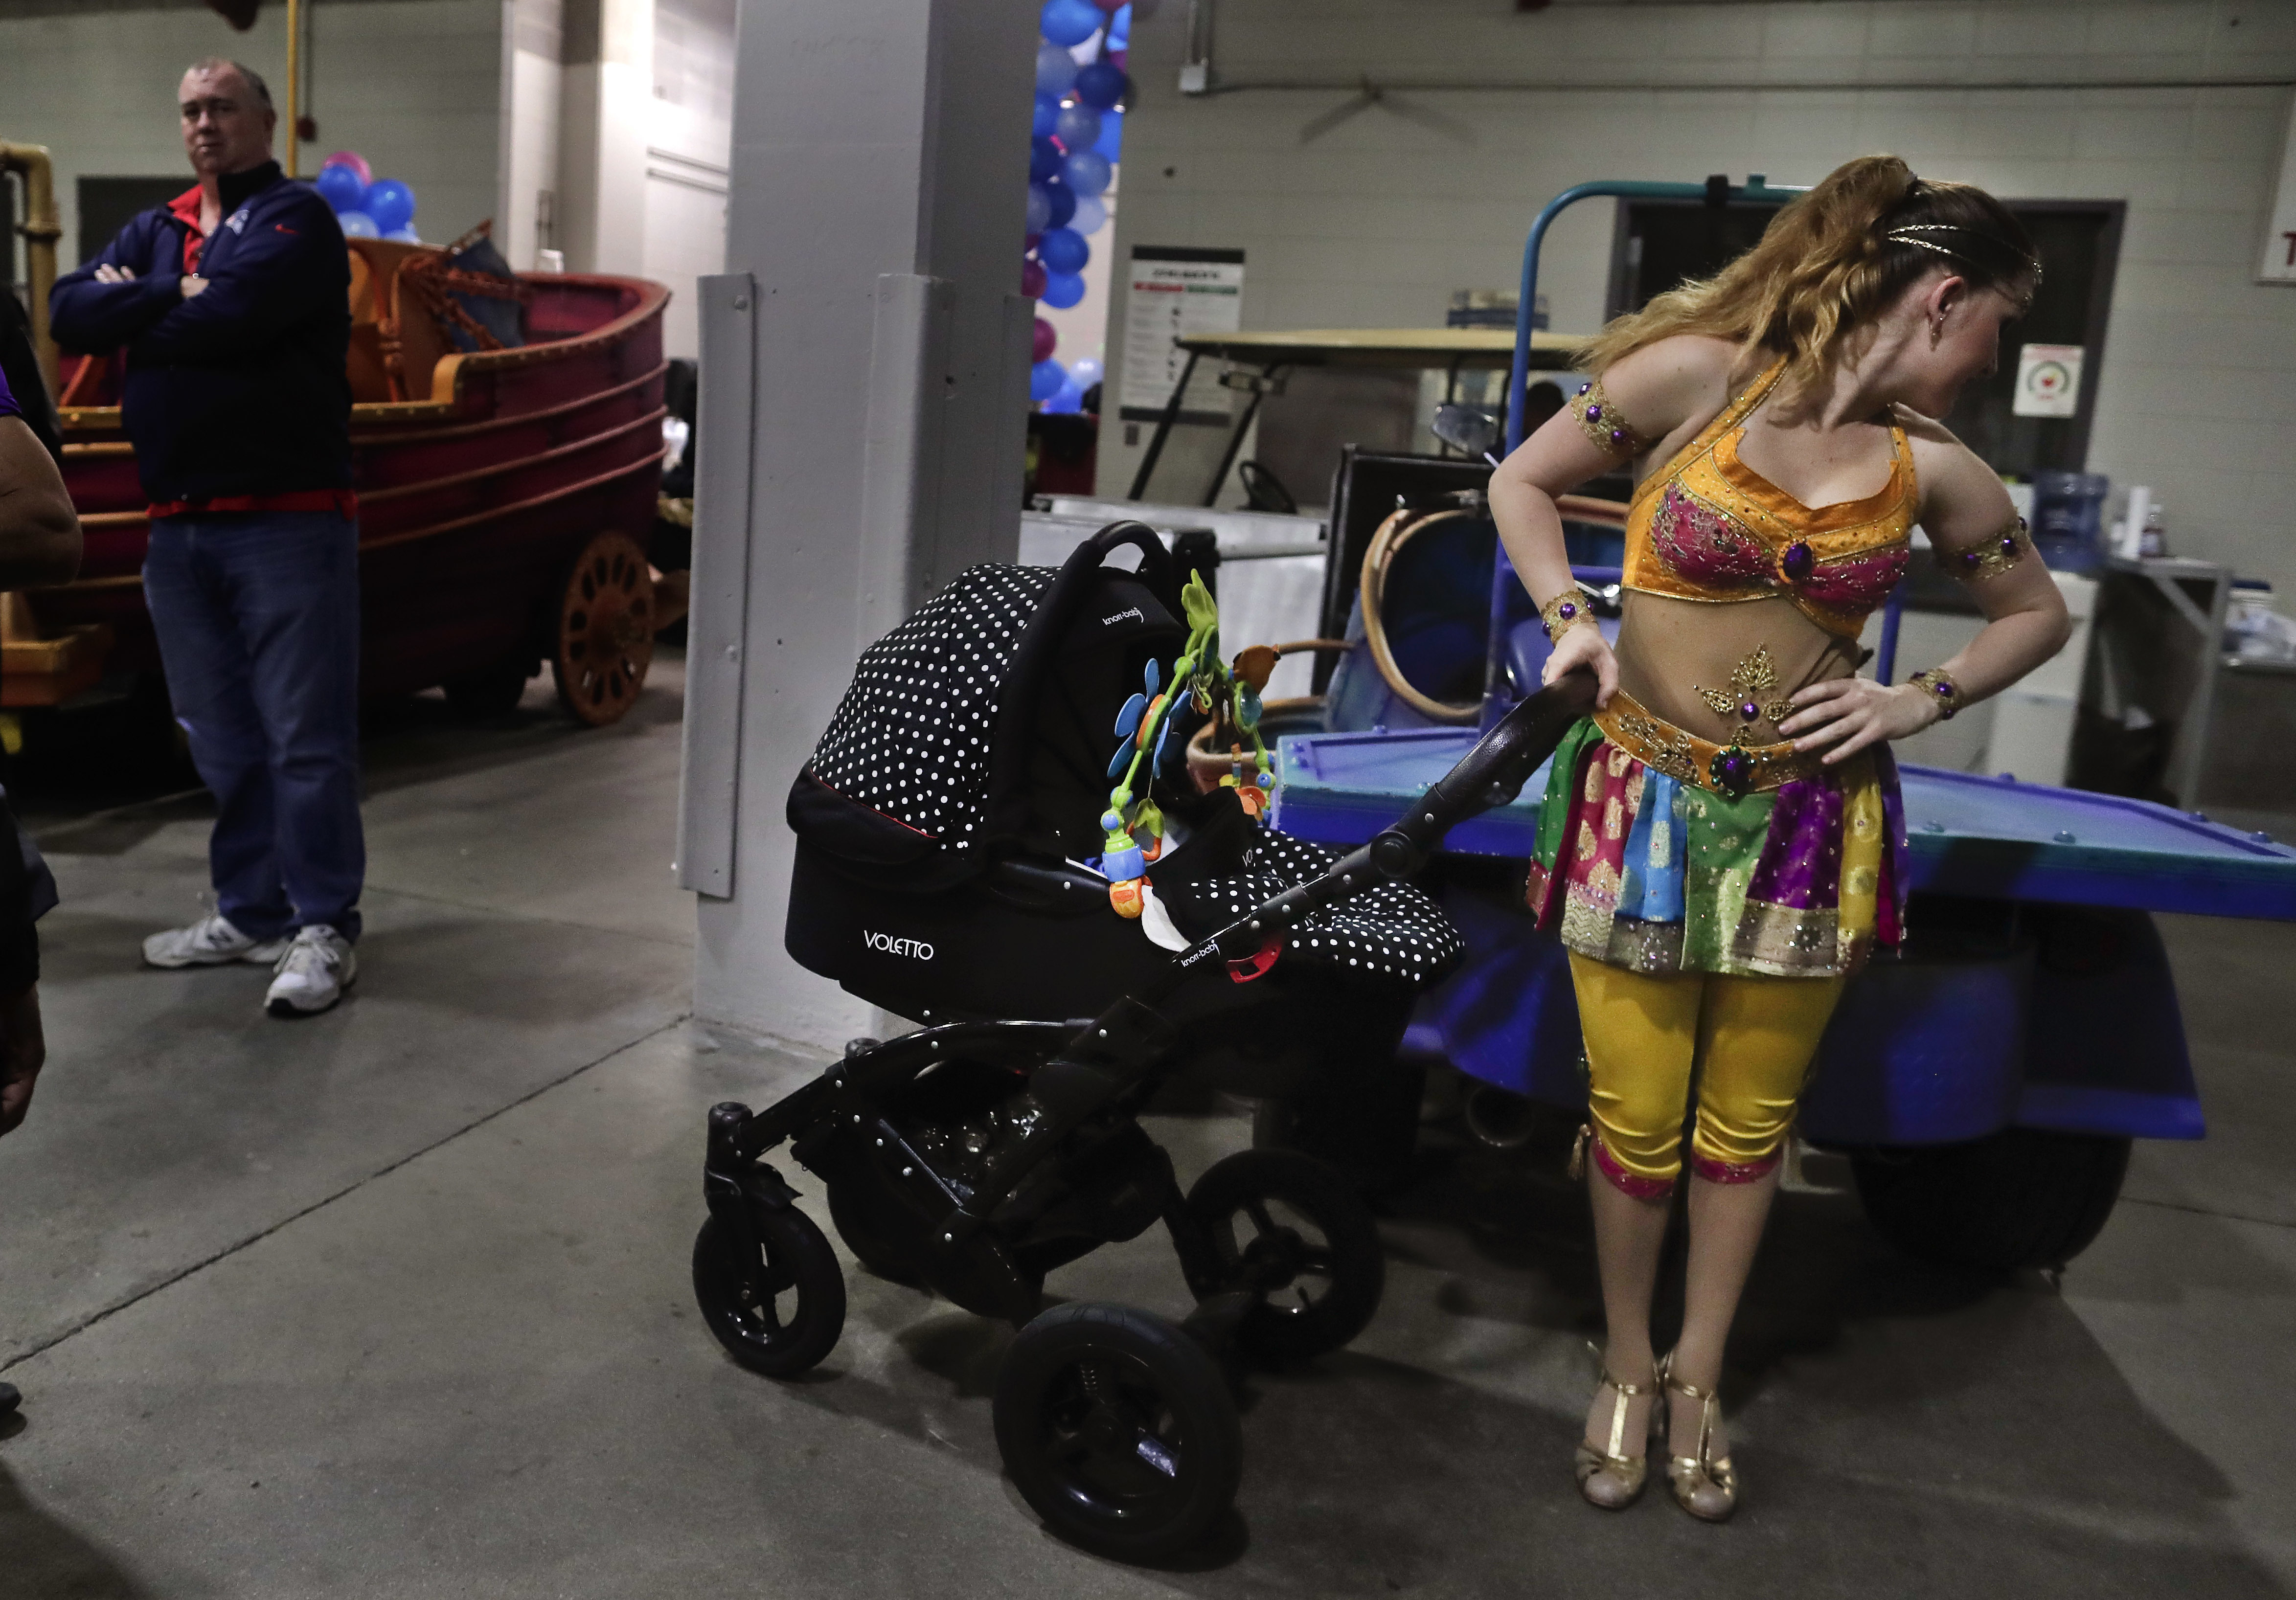 Ringling Bros. high wire performer Anna Lebedeva stands next to her 3-month-old son, Amir, in his stroller while waiting to go on for the show's finale on May 5, 2017, in Providence, R.I. (Julie Jacobson/Associated Press)